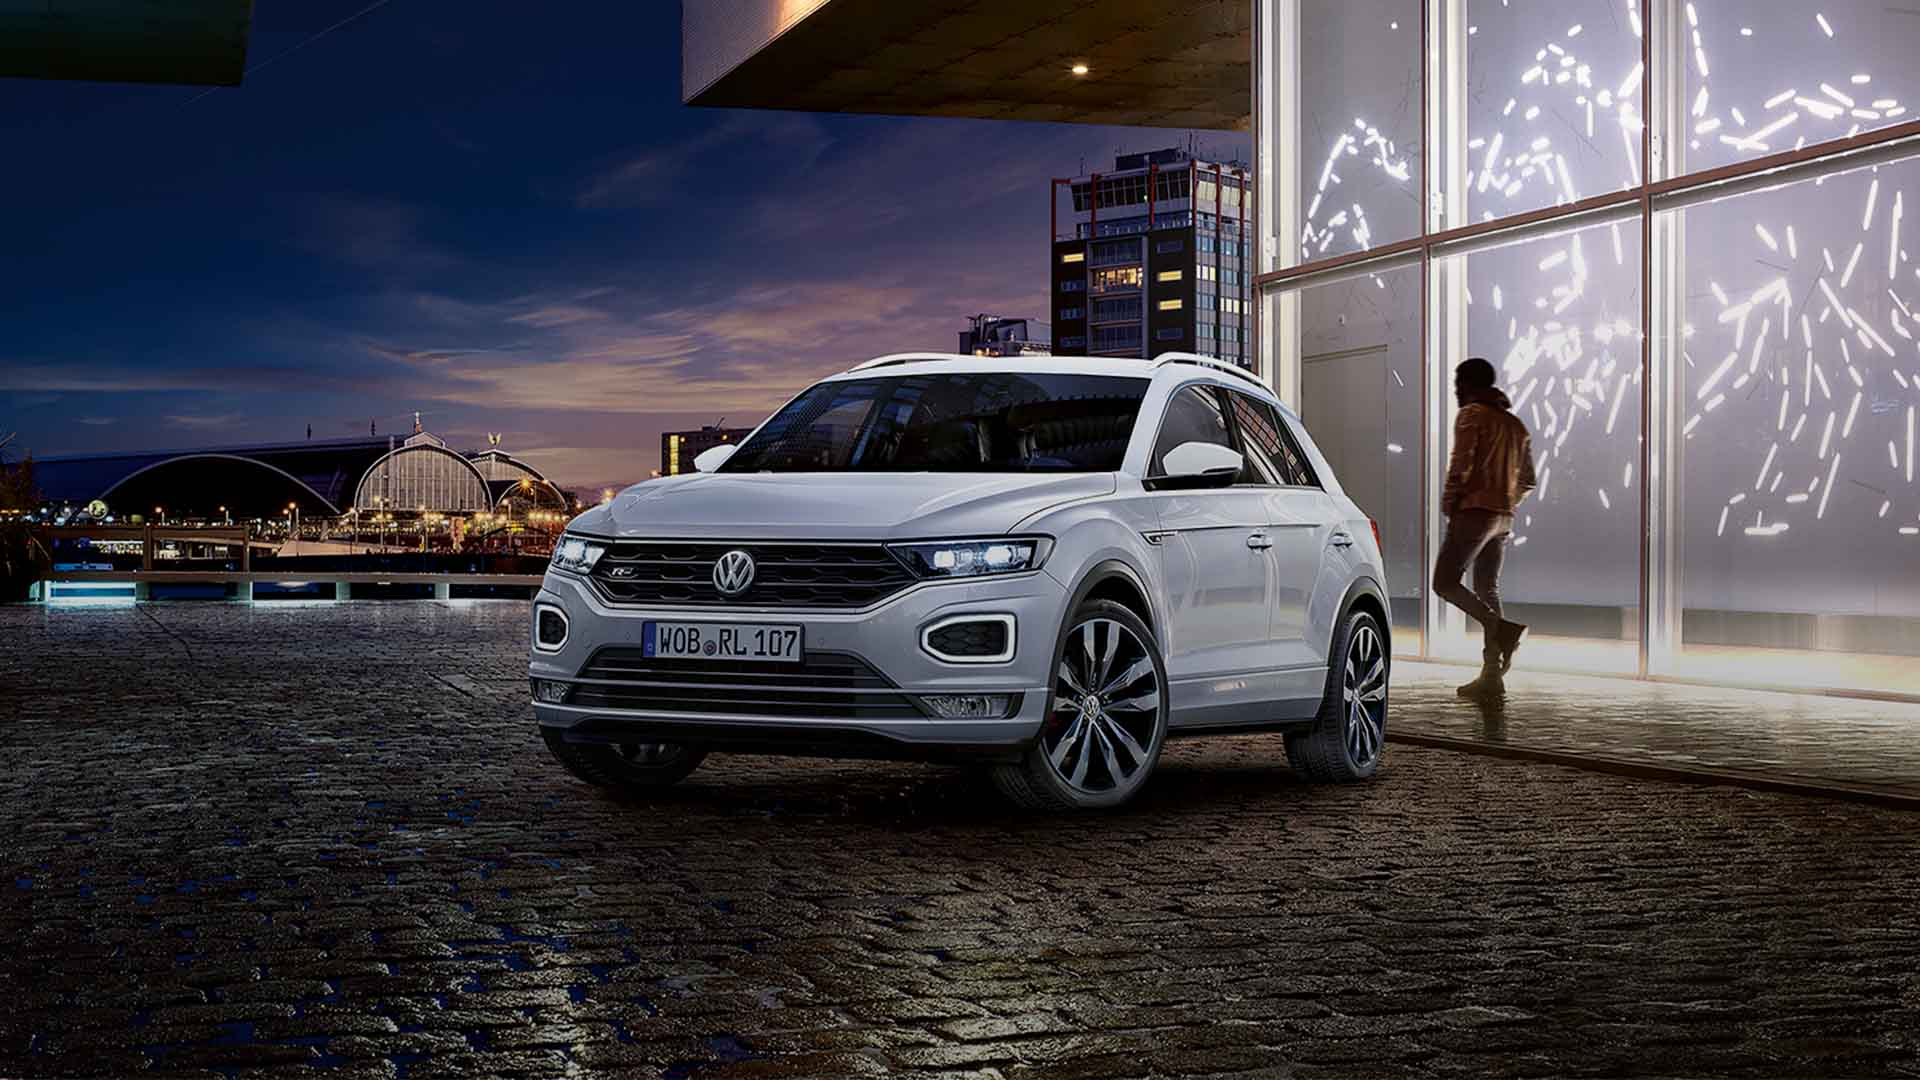 THE NEW T-ROC, ARRIVING IN 2020. Image